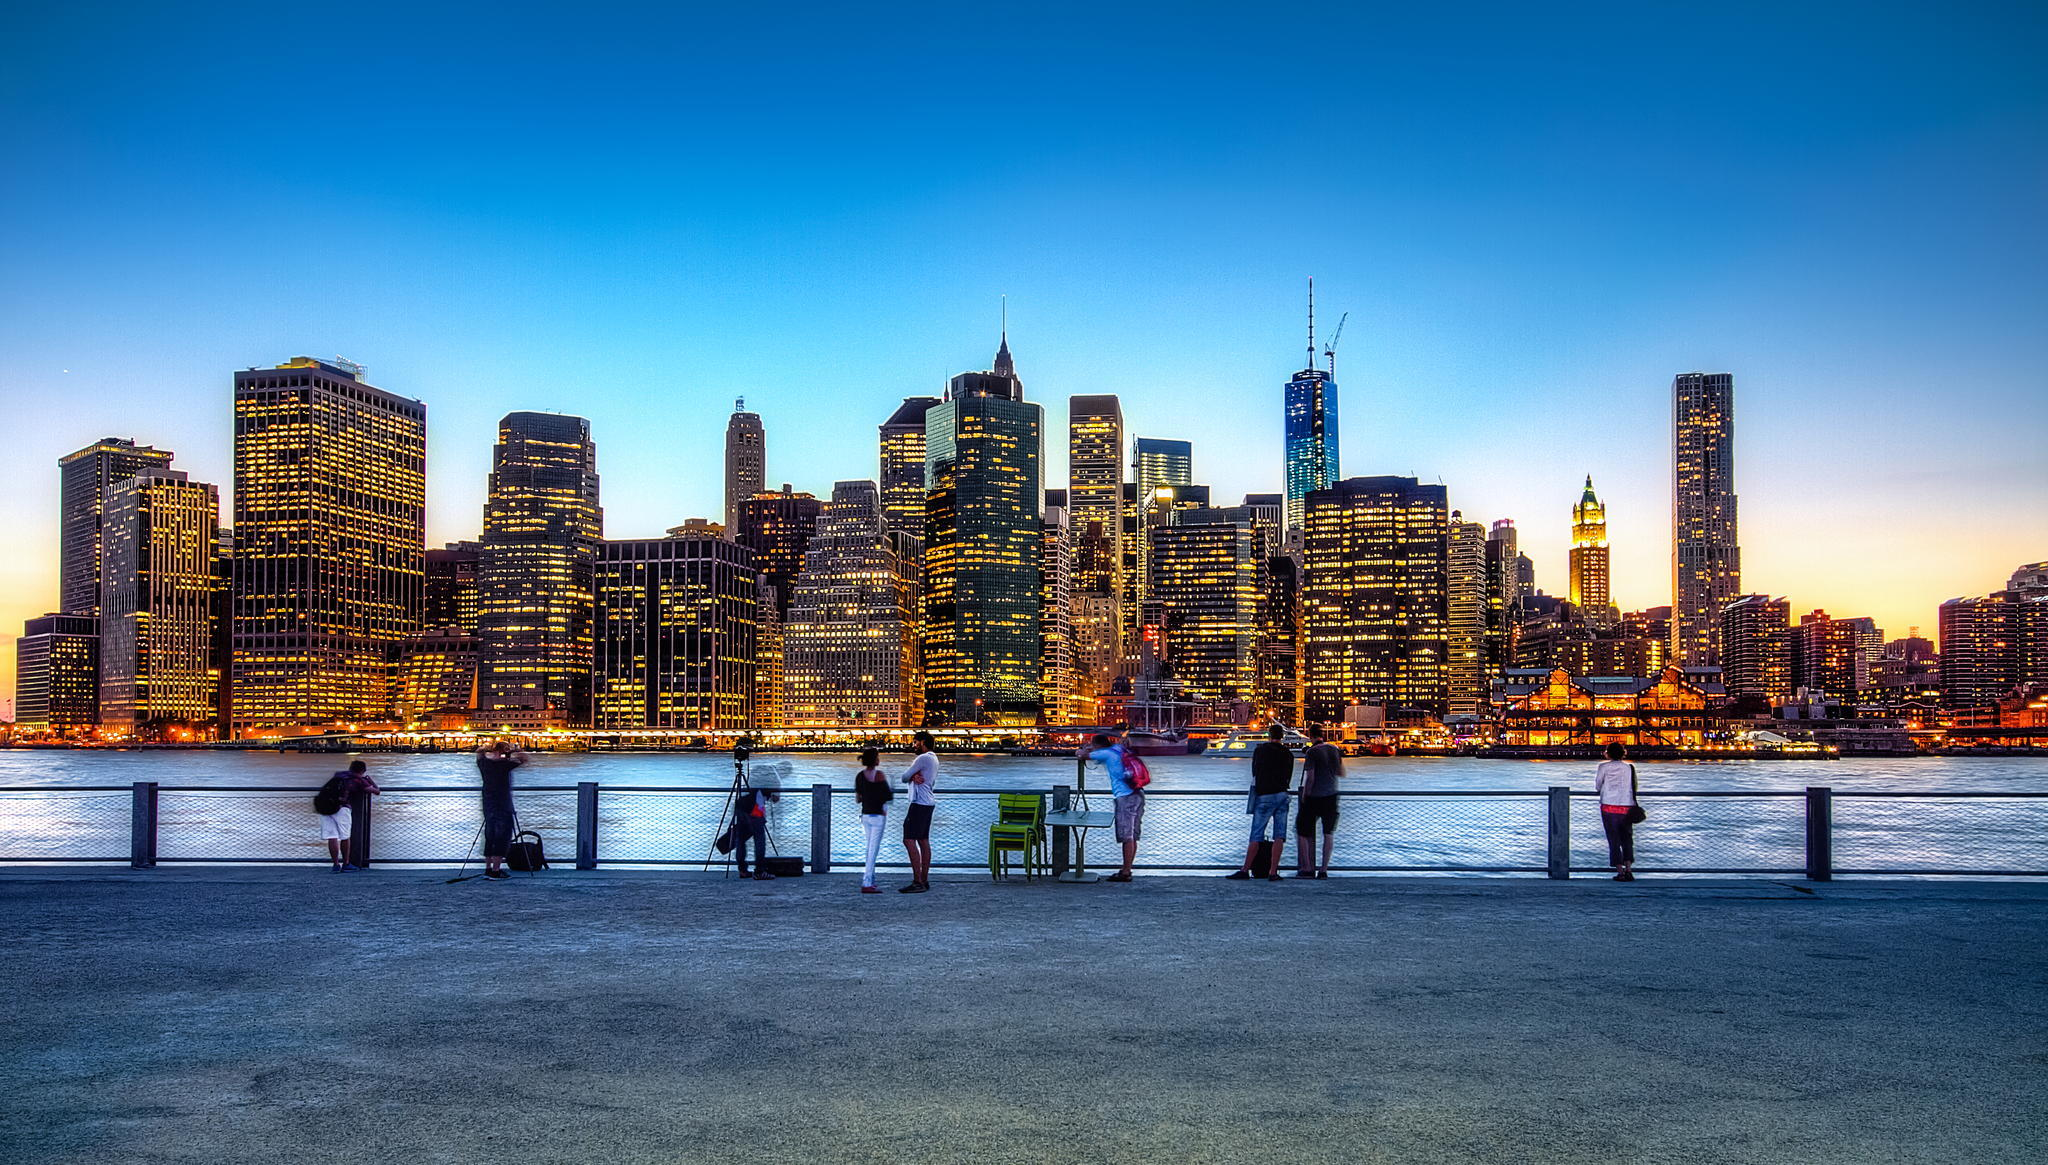 Nature Wallpaper Full Hd National Geographic New York Beautiful City Hd Wallpapers All Hd Wallpapers